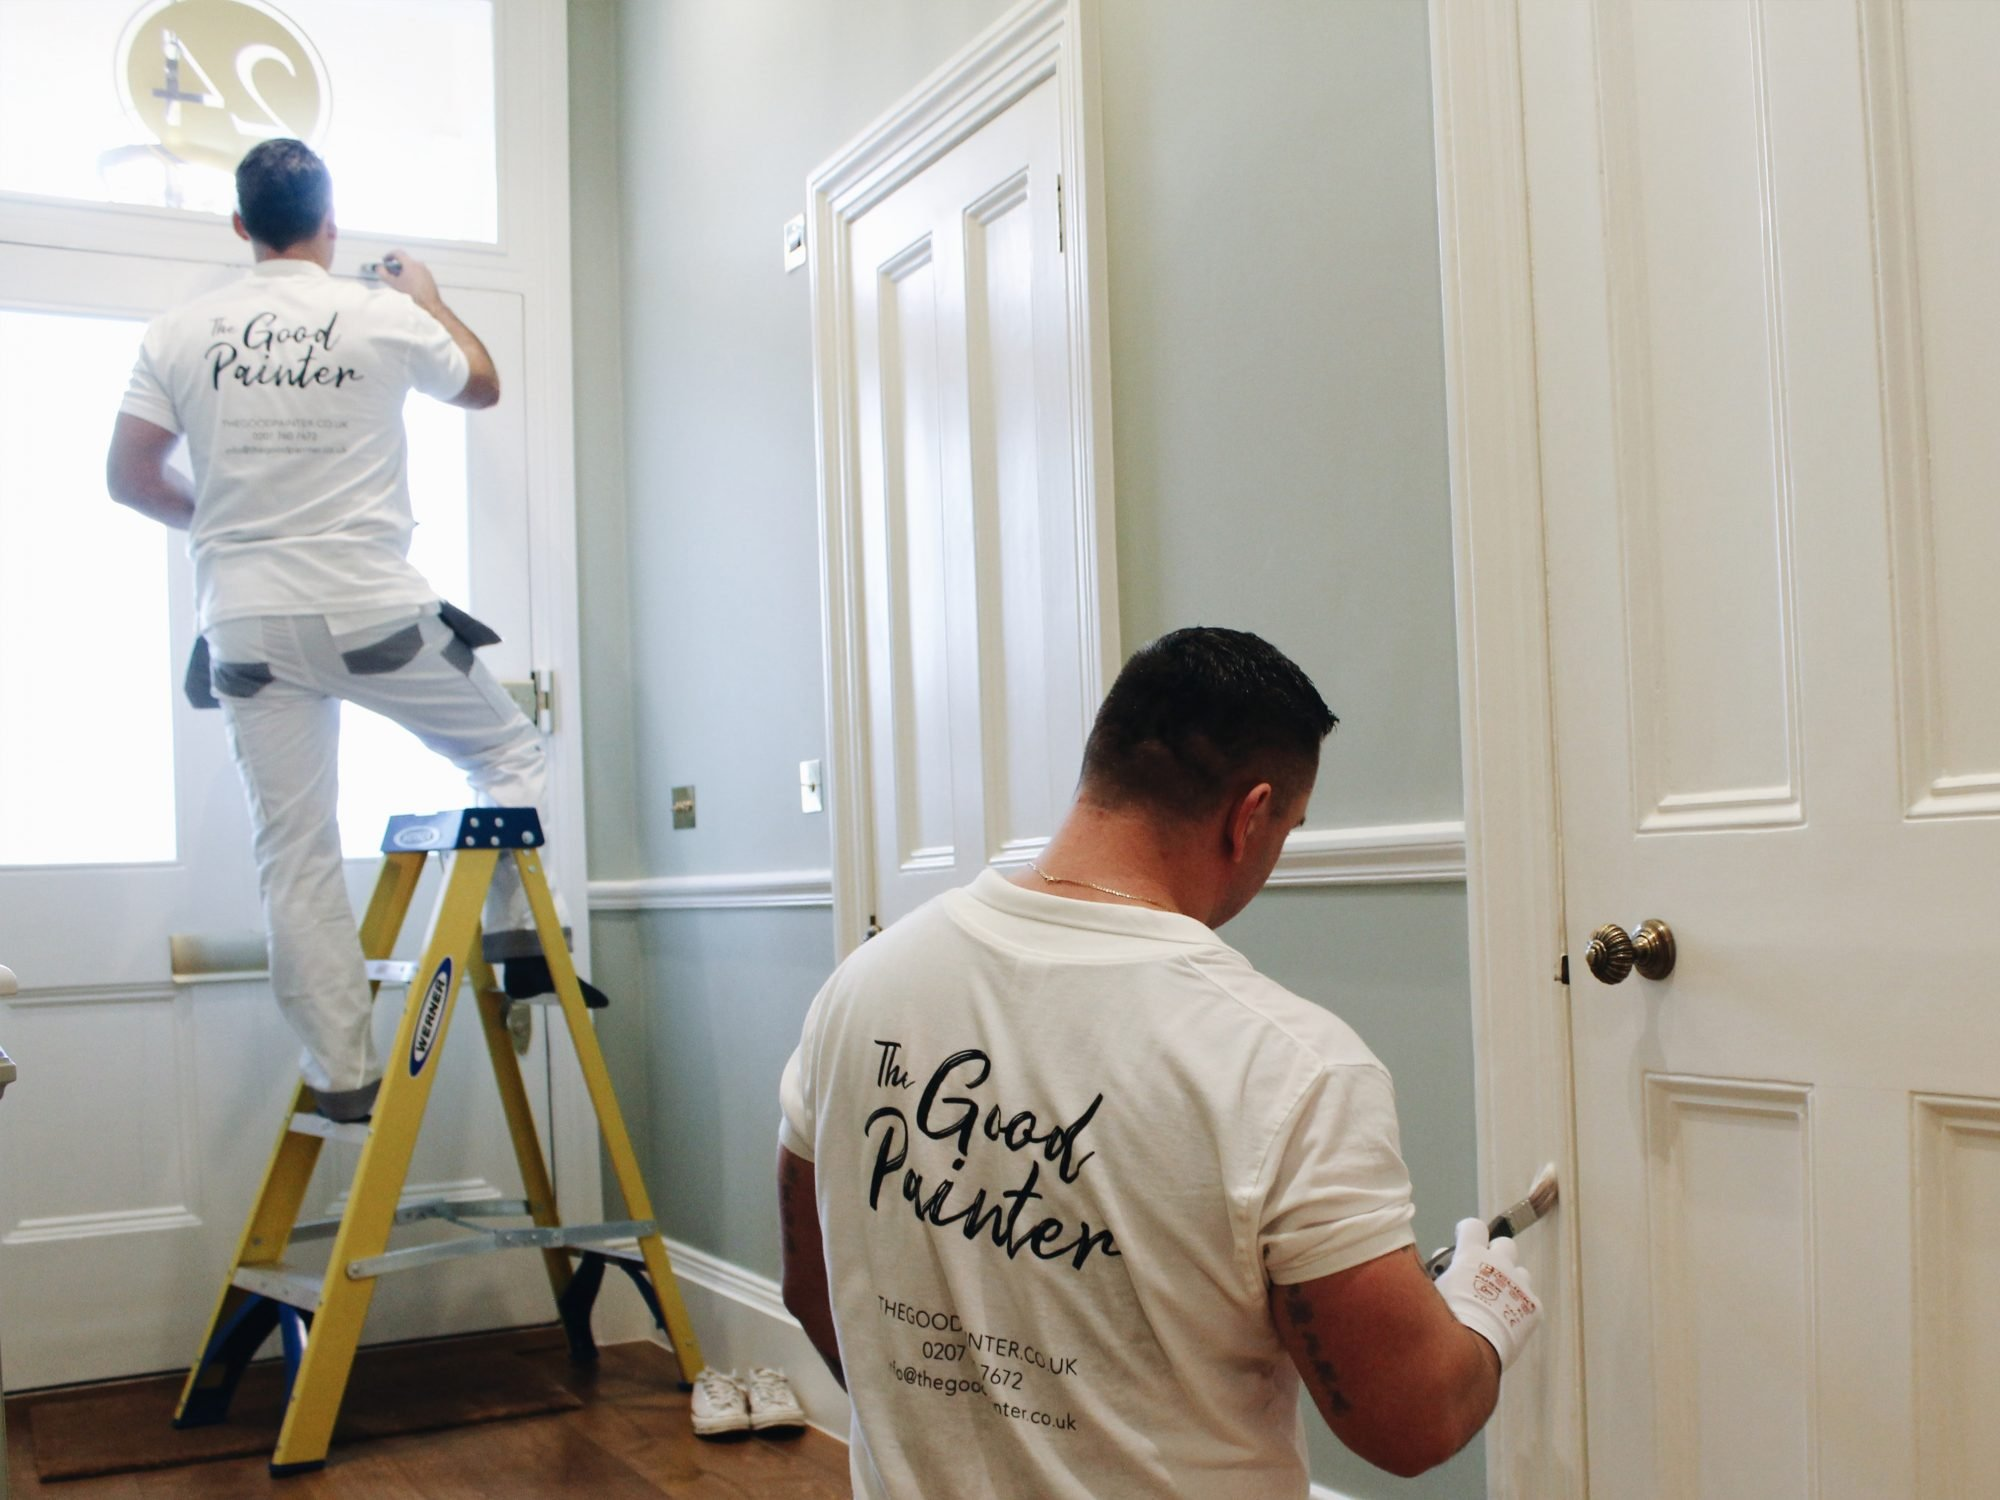 The Good Painter team-painting in progress -painters and decorators based in London